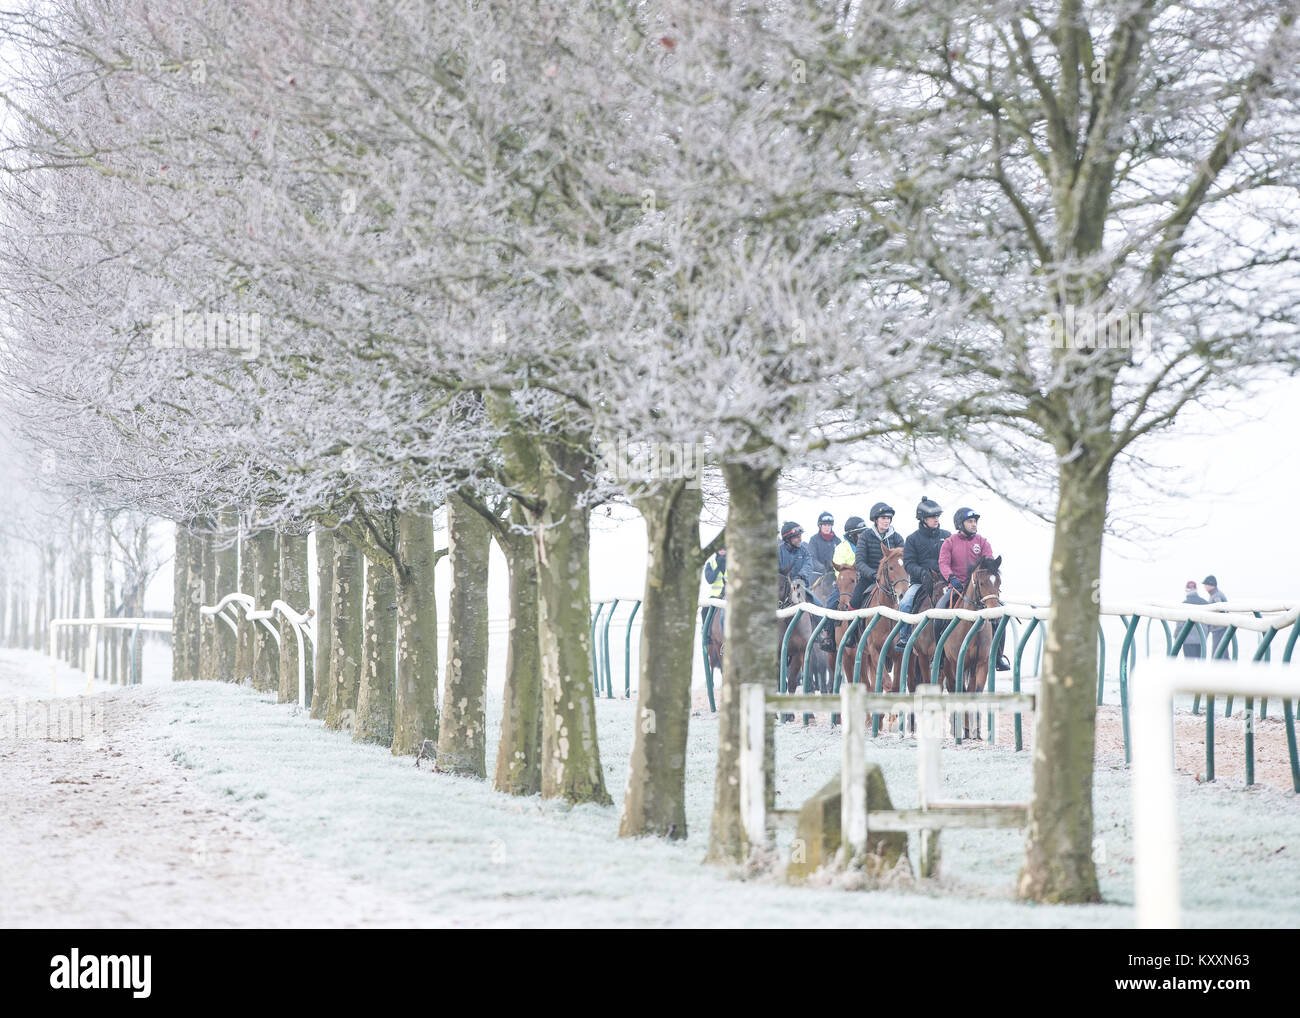 Racehorses Newmarket Winter - Stock Image